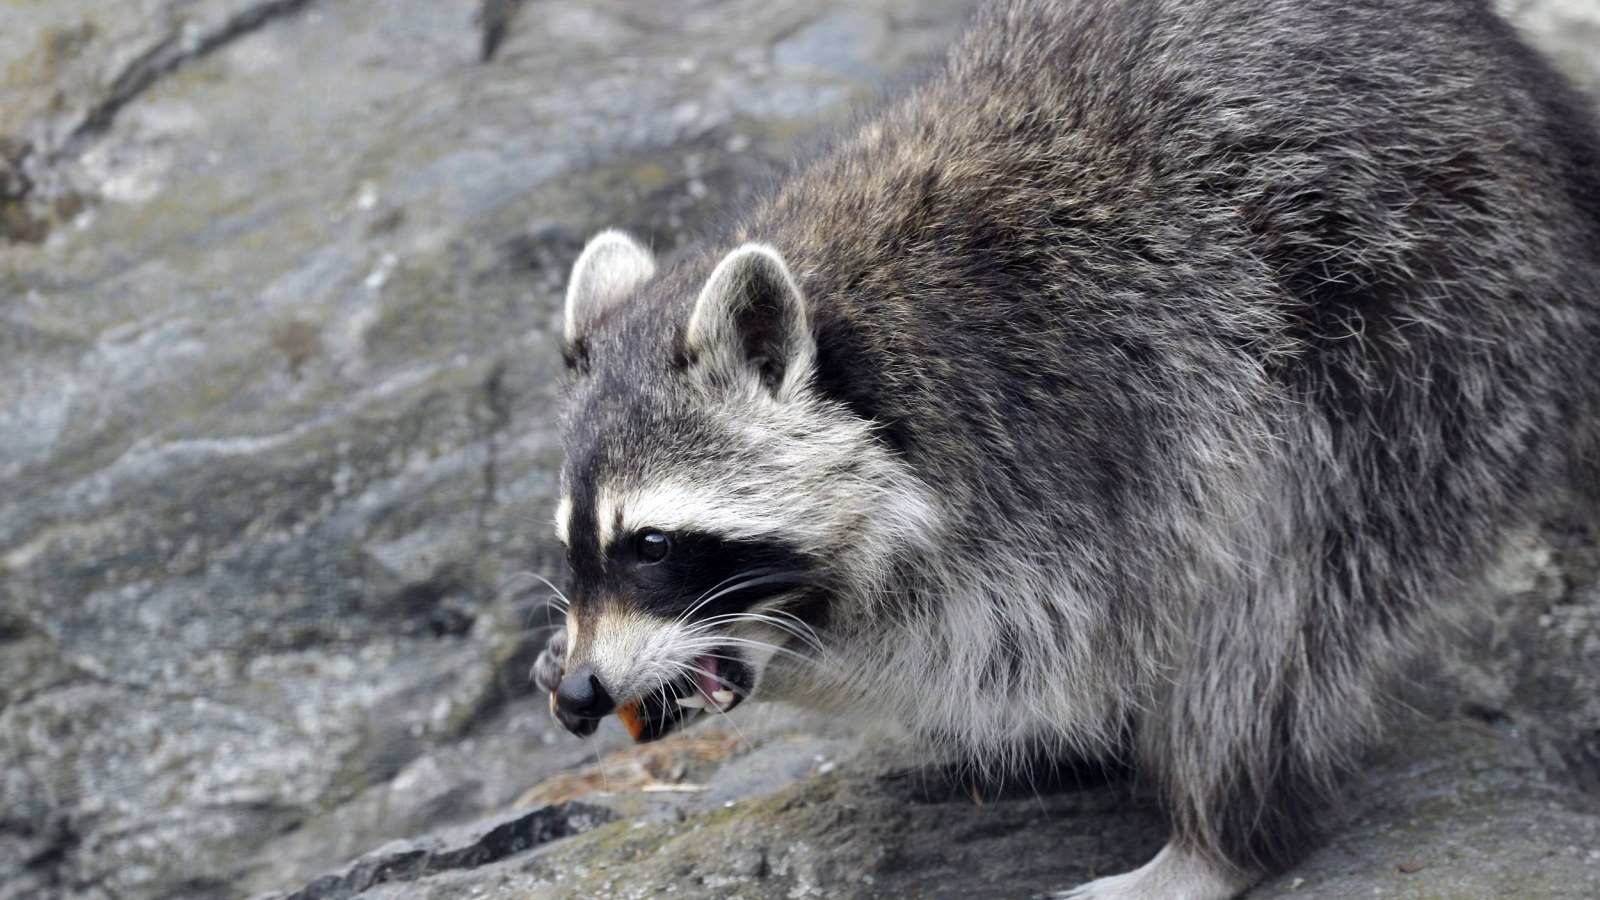 Woman Drowns Raccoon to Save Her Thumb In The Ultimate Tale